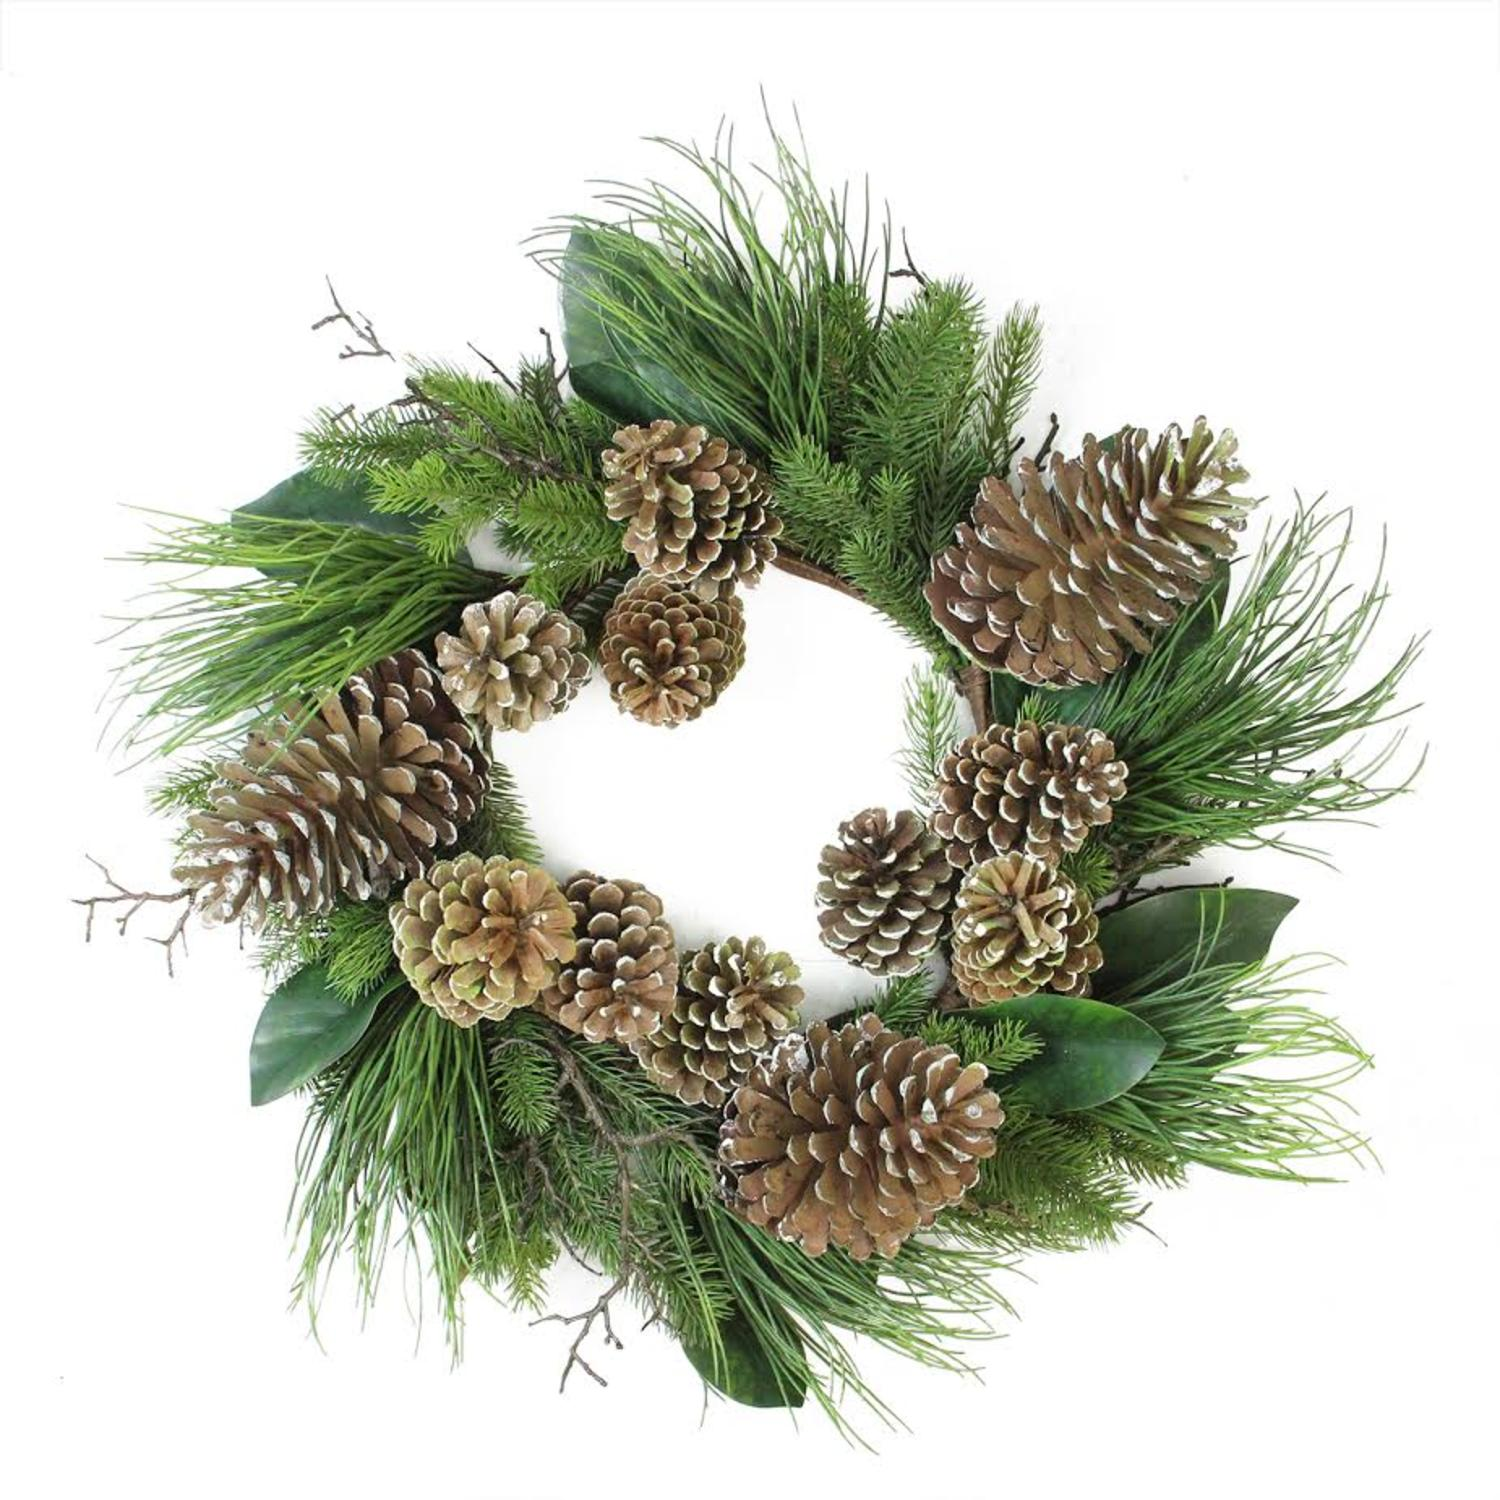 28 monalisa mixed pine with large pine cones and foliage christmas wreath unlit